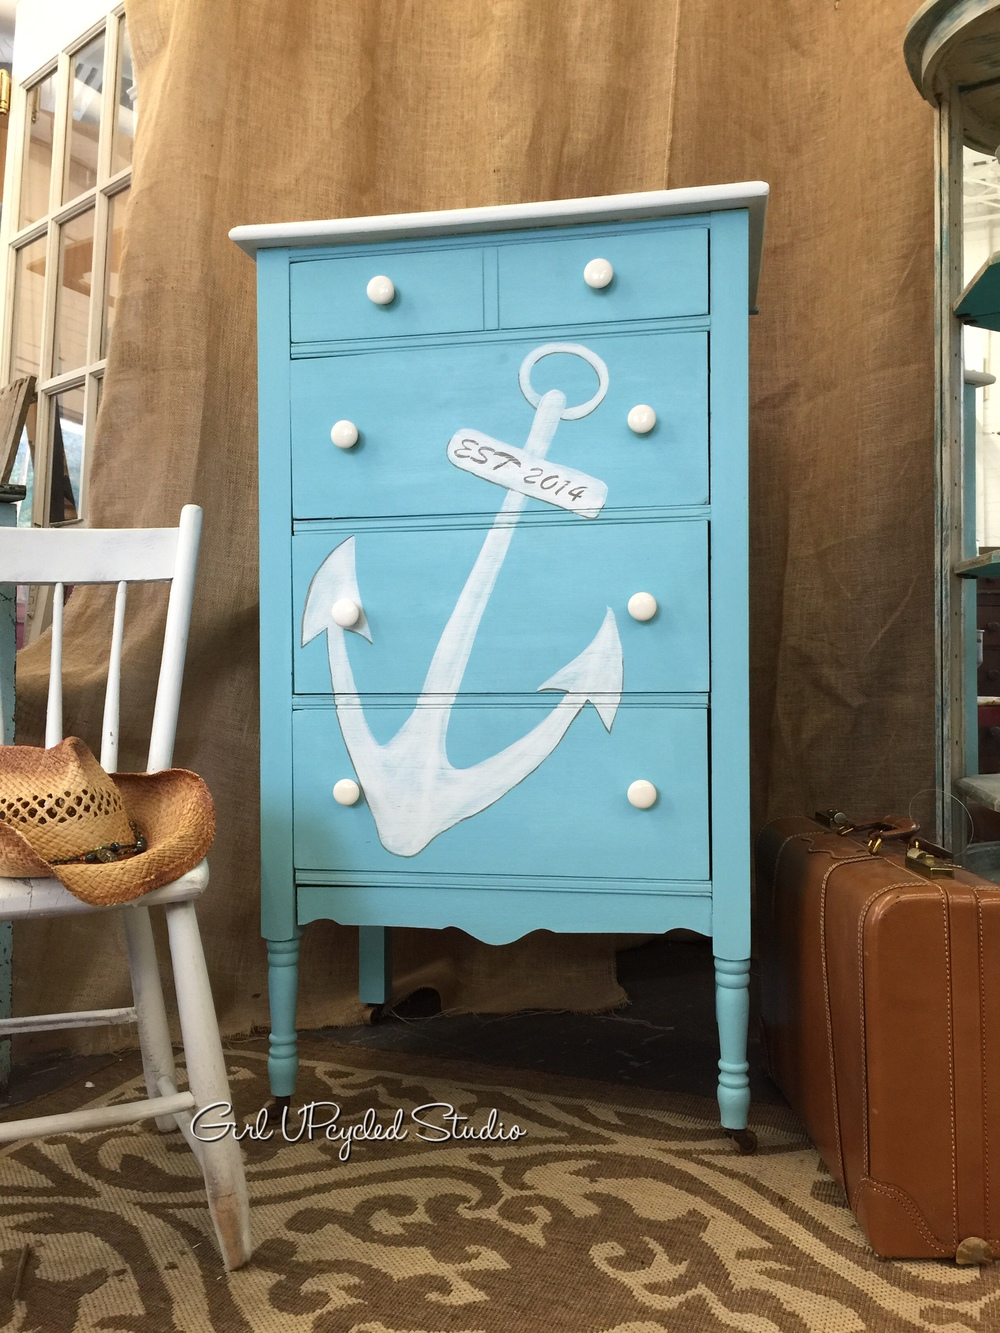 furniture-store-zanesville-ohio-girl-upcycled-studio.JPG